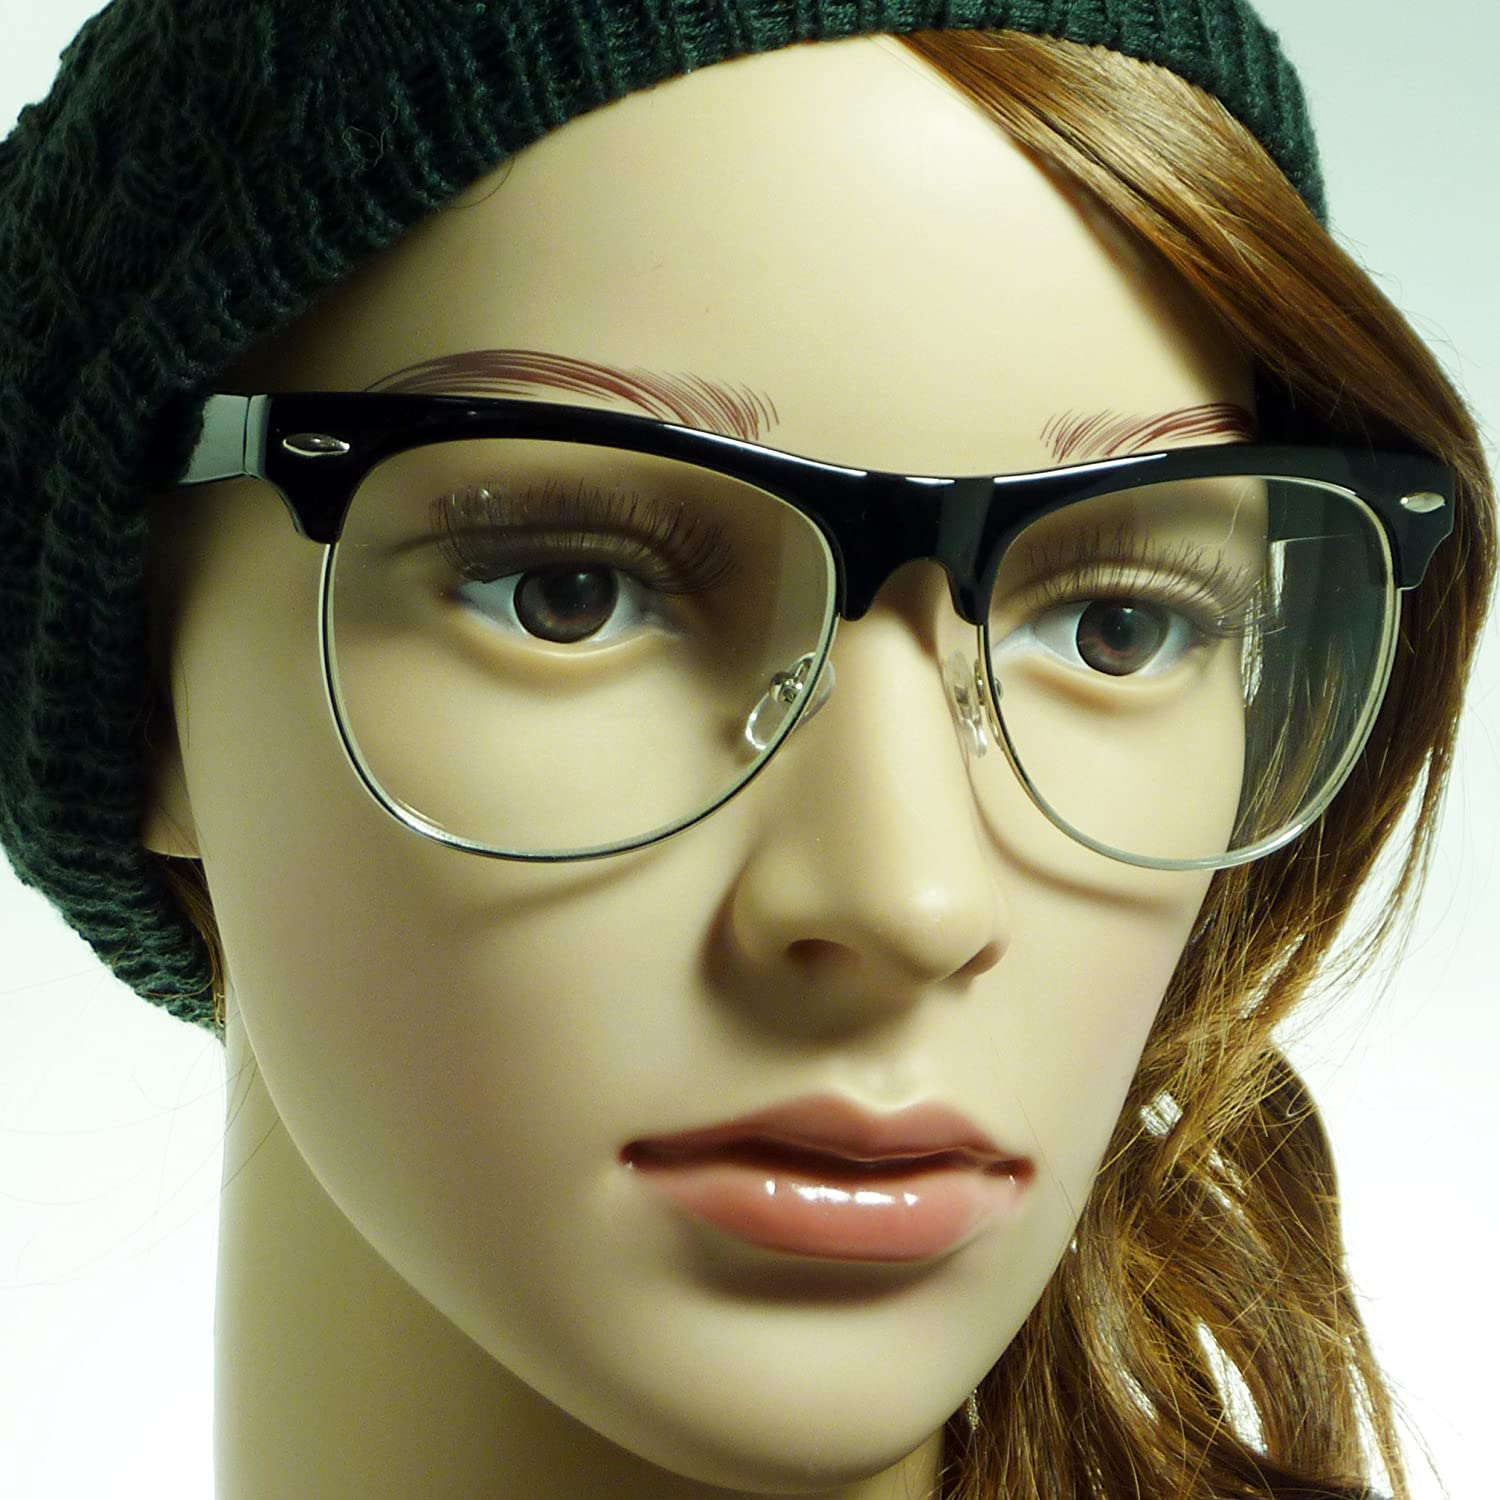 d4ad21f1f Amazon.com: VINTAGE Clubmaster Thick Half Rim Trendy Frame Clear Lens Eye  Glasses GOLD/BLACK: Clothing